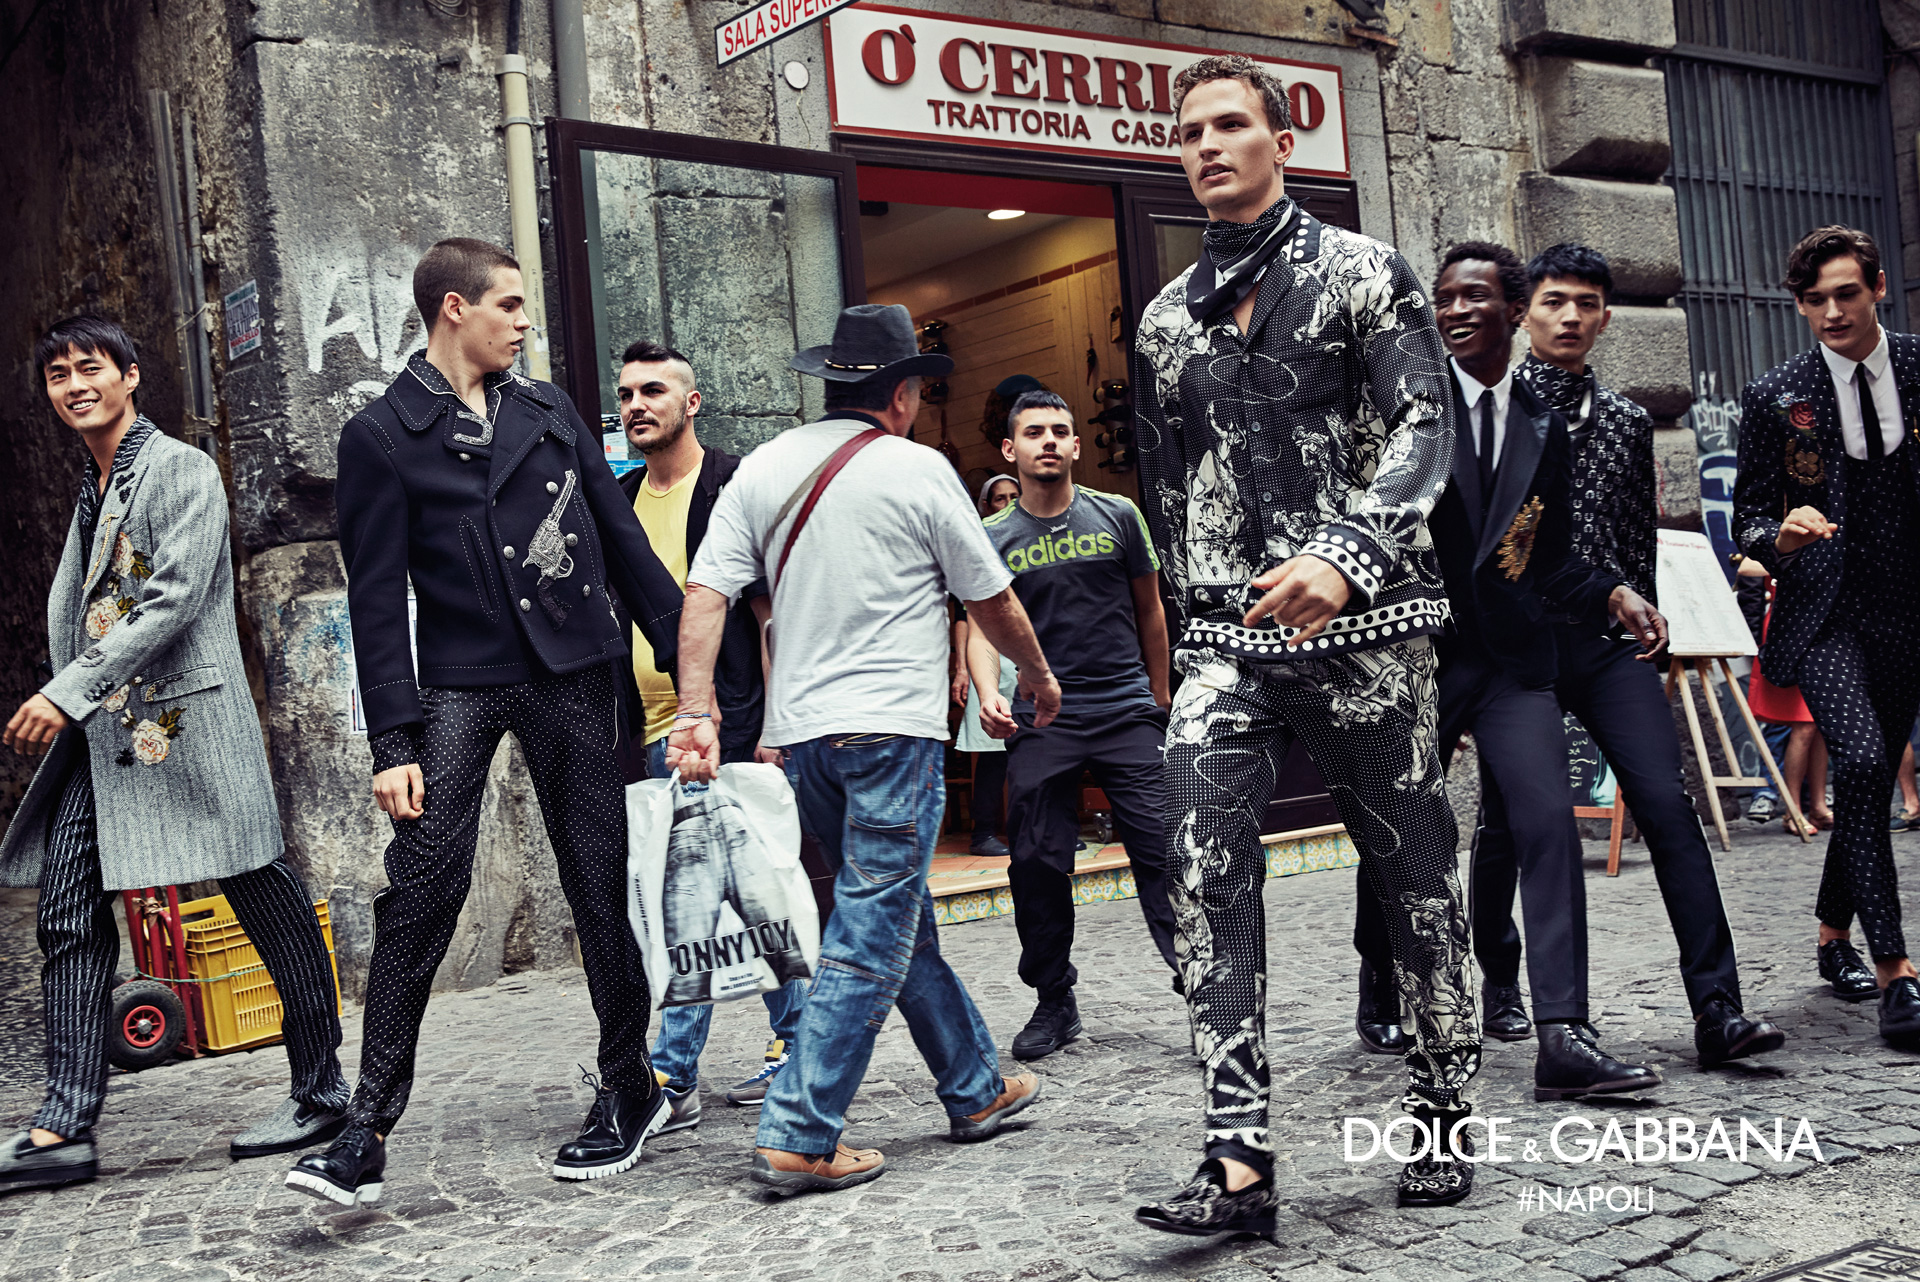 Dolce-Gabbana-Fall-Winter-2016-2017-Ad-Campaign-Naples-3